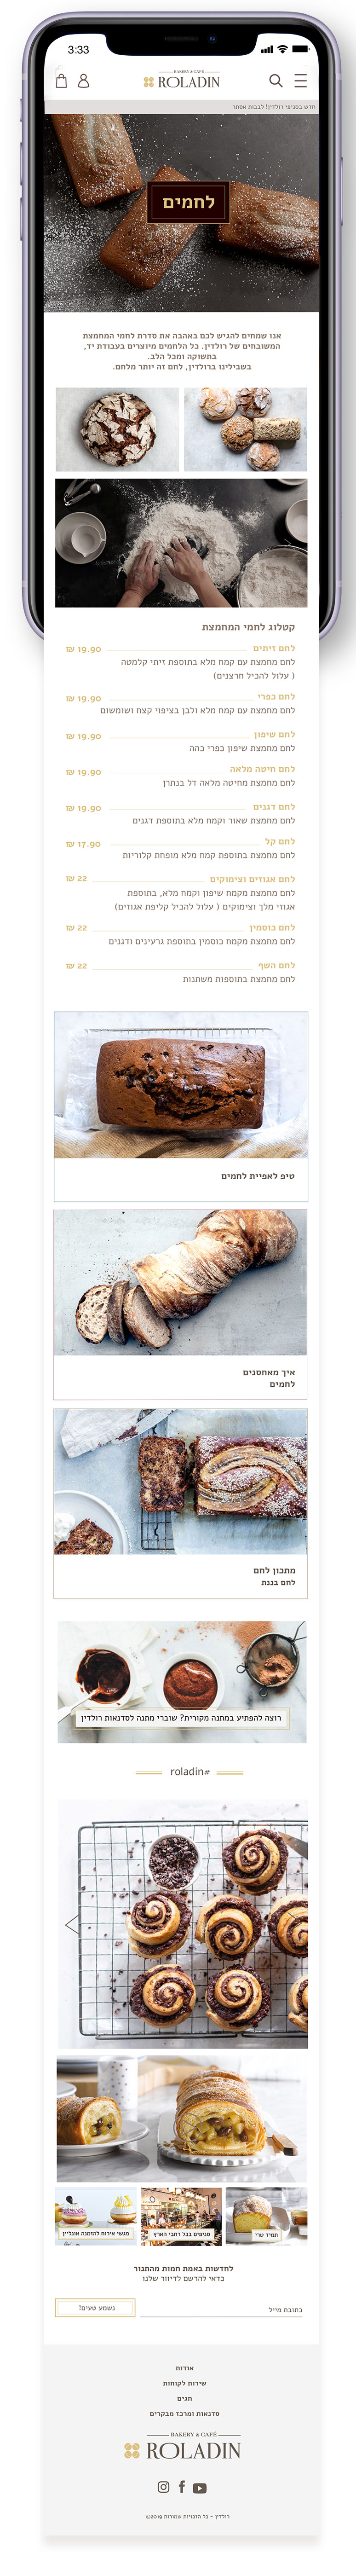 iPhone product section- bread.jpg